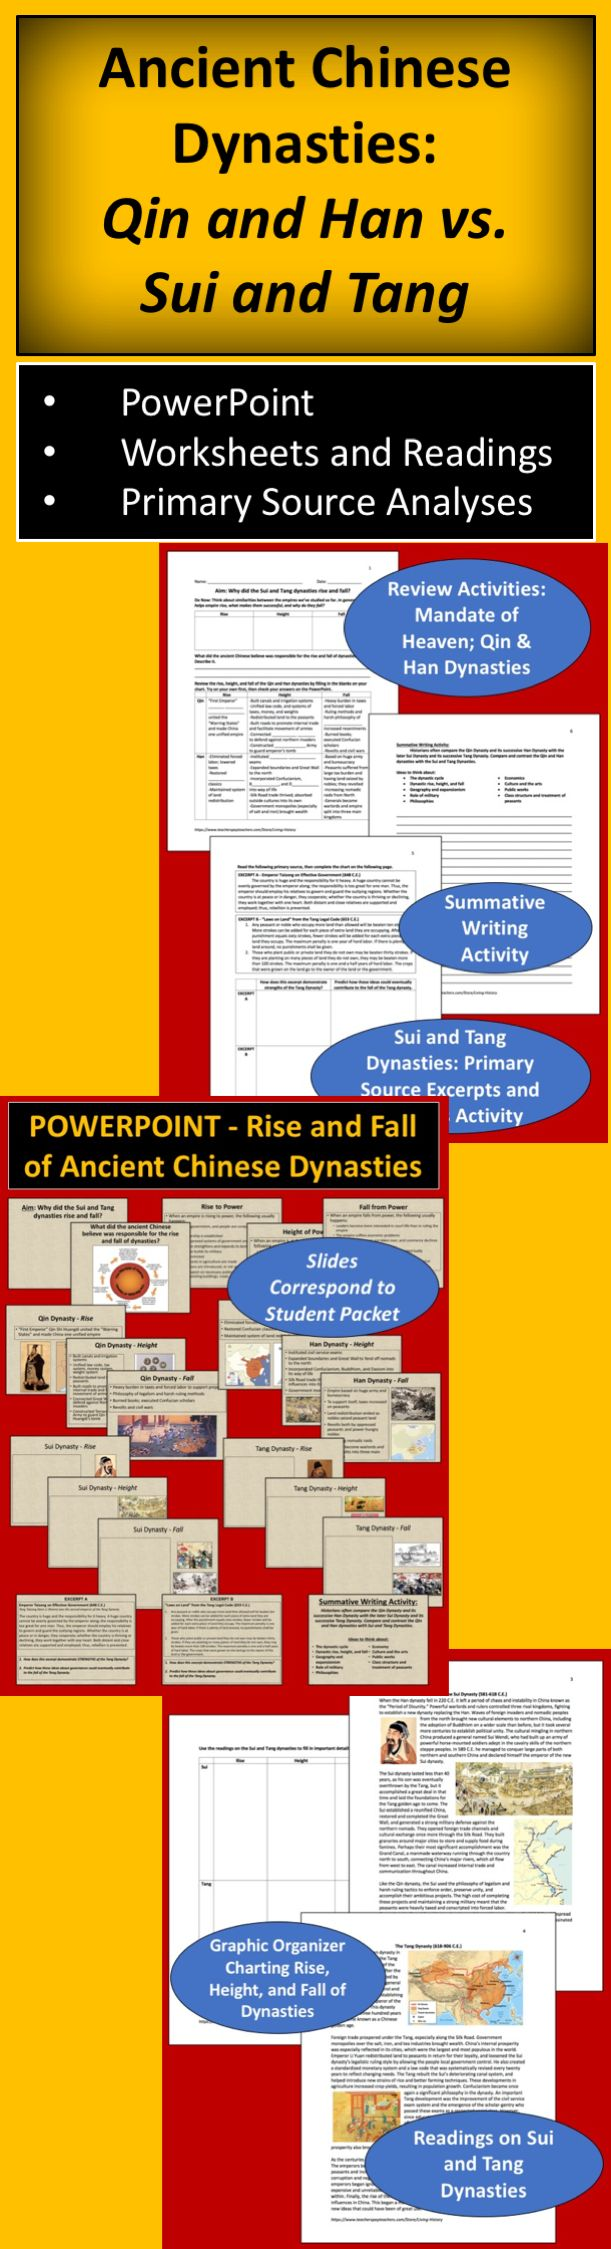 This complete lesson on four significant ancient Chinese dynasties teaches about the rise, height, and fall of the Qin and Han Dynasties, as well as the later Sui and Tang Dynasties. It contains an engaging and attractive PowerPoint, which corresponds with a student packet. Specific historical details are taught as well as larger picture historical comparisons between the two dynasty pairings. Students love the challenge of immersing themselves in high-level work in an accessible way.